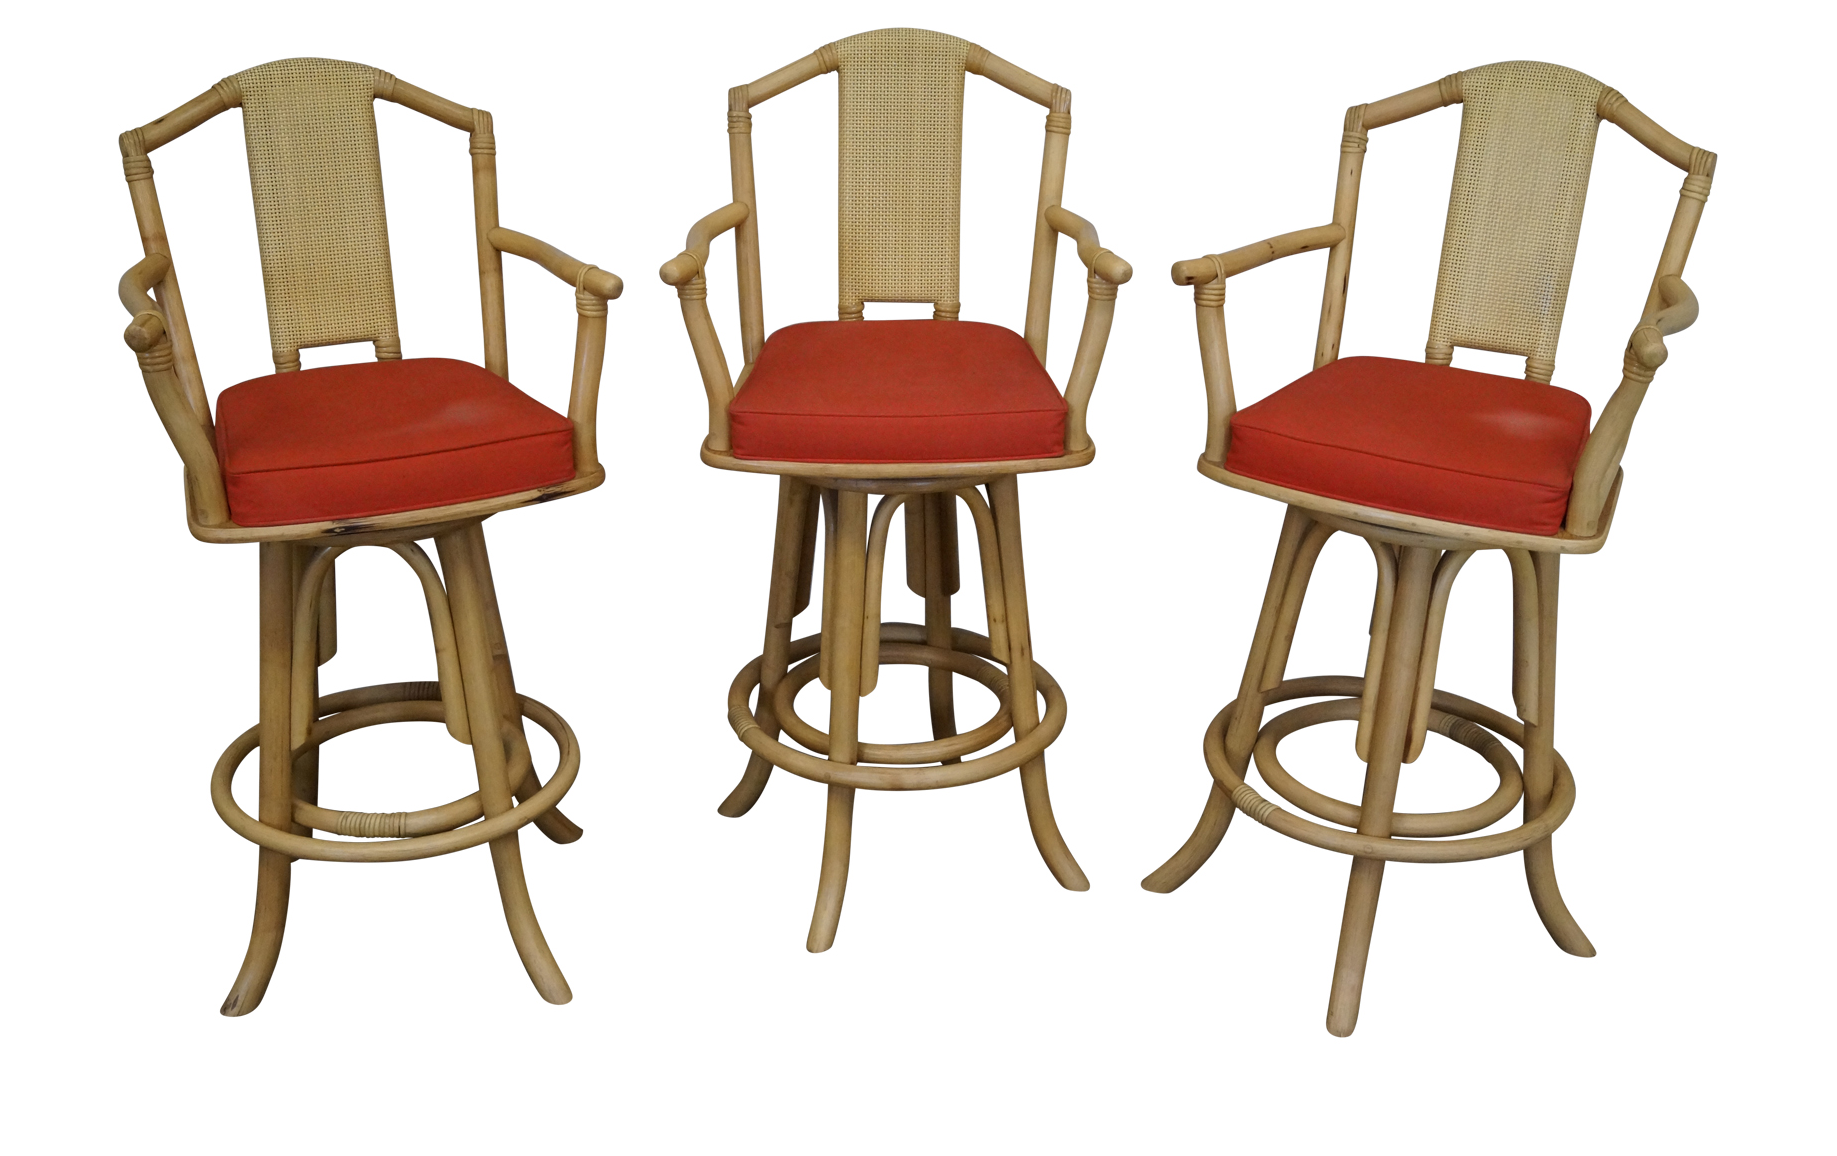 Vintage Bent Bamboo U0026 Rattan Swivel Bar Stools    Set Of 3